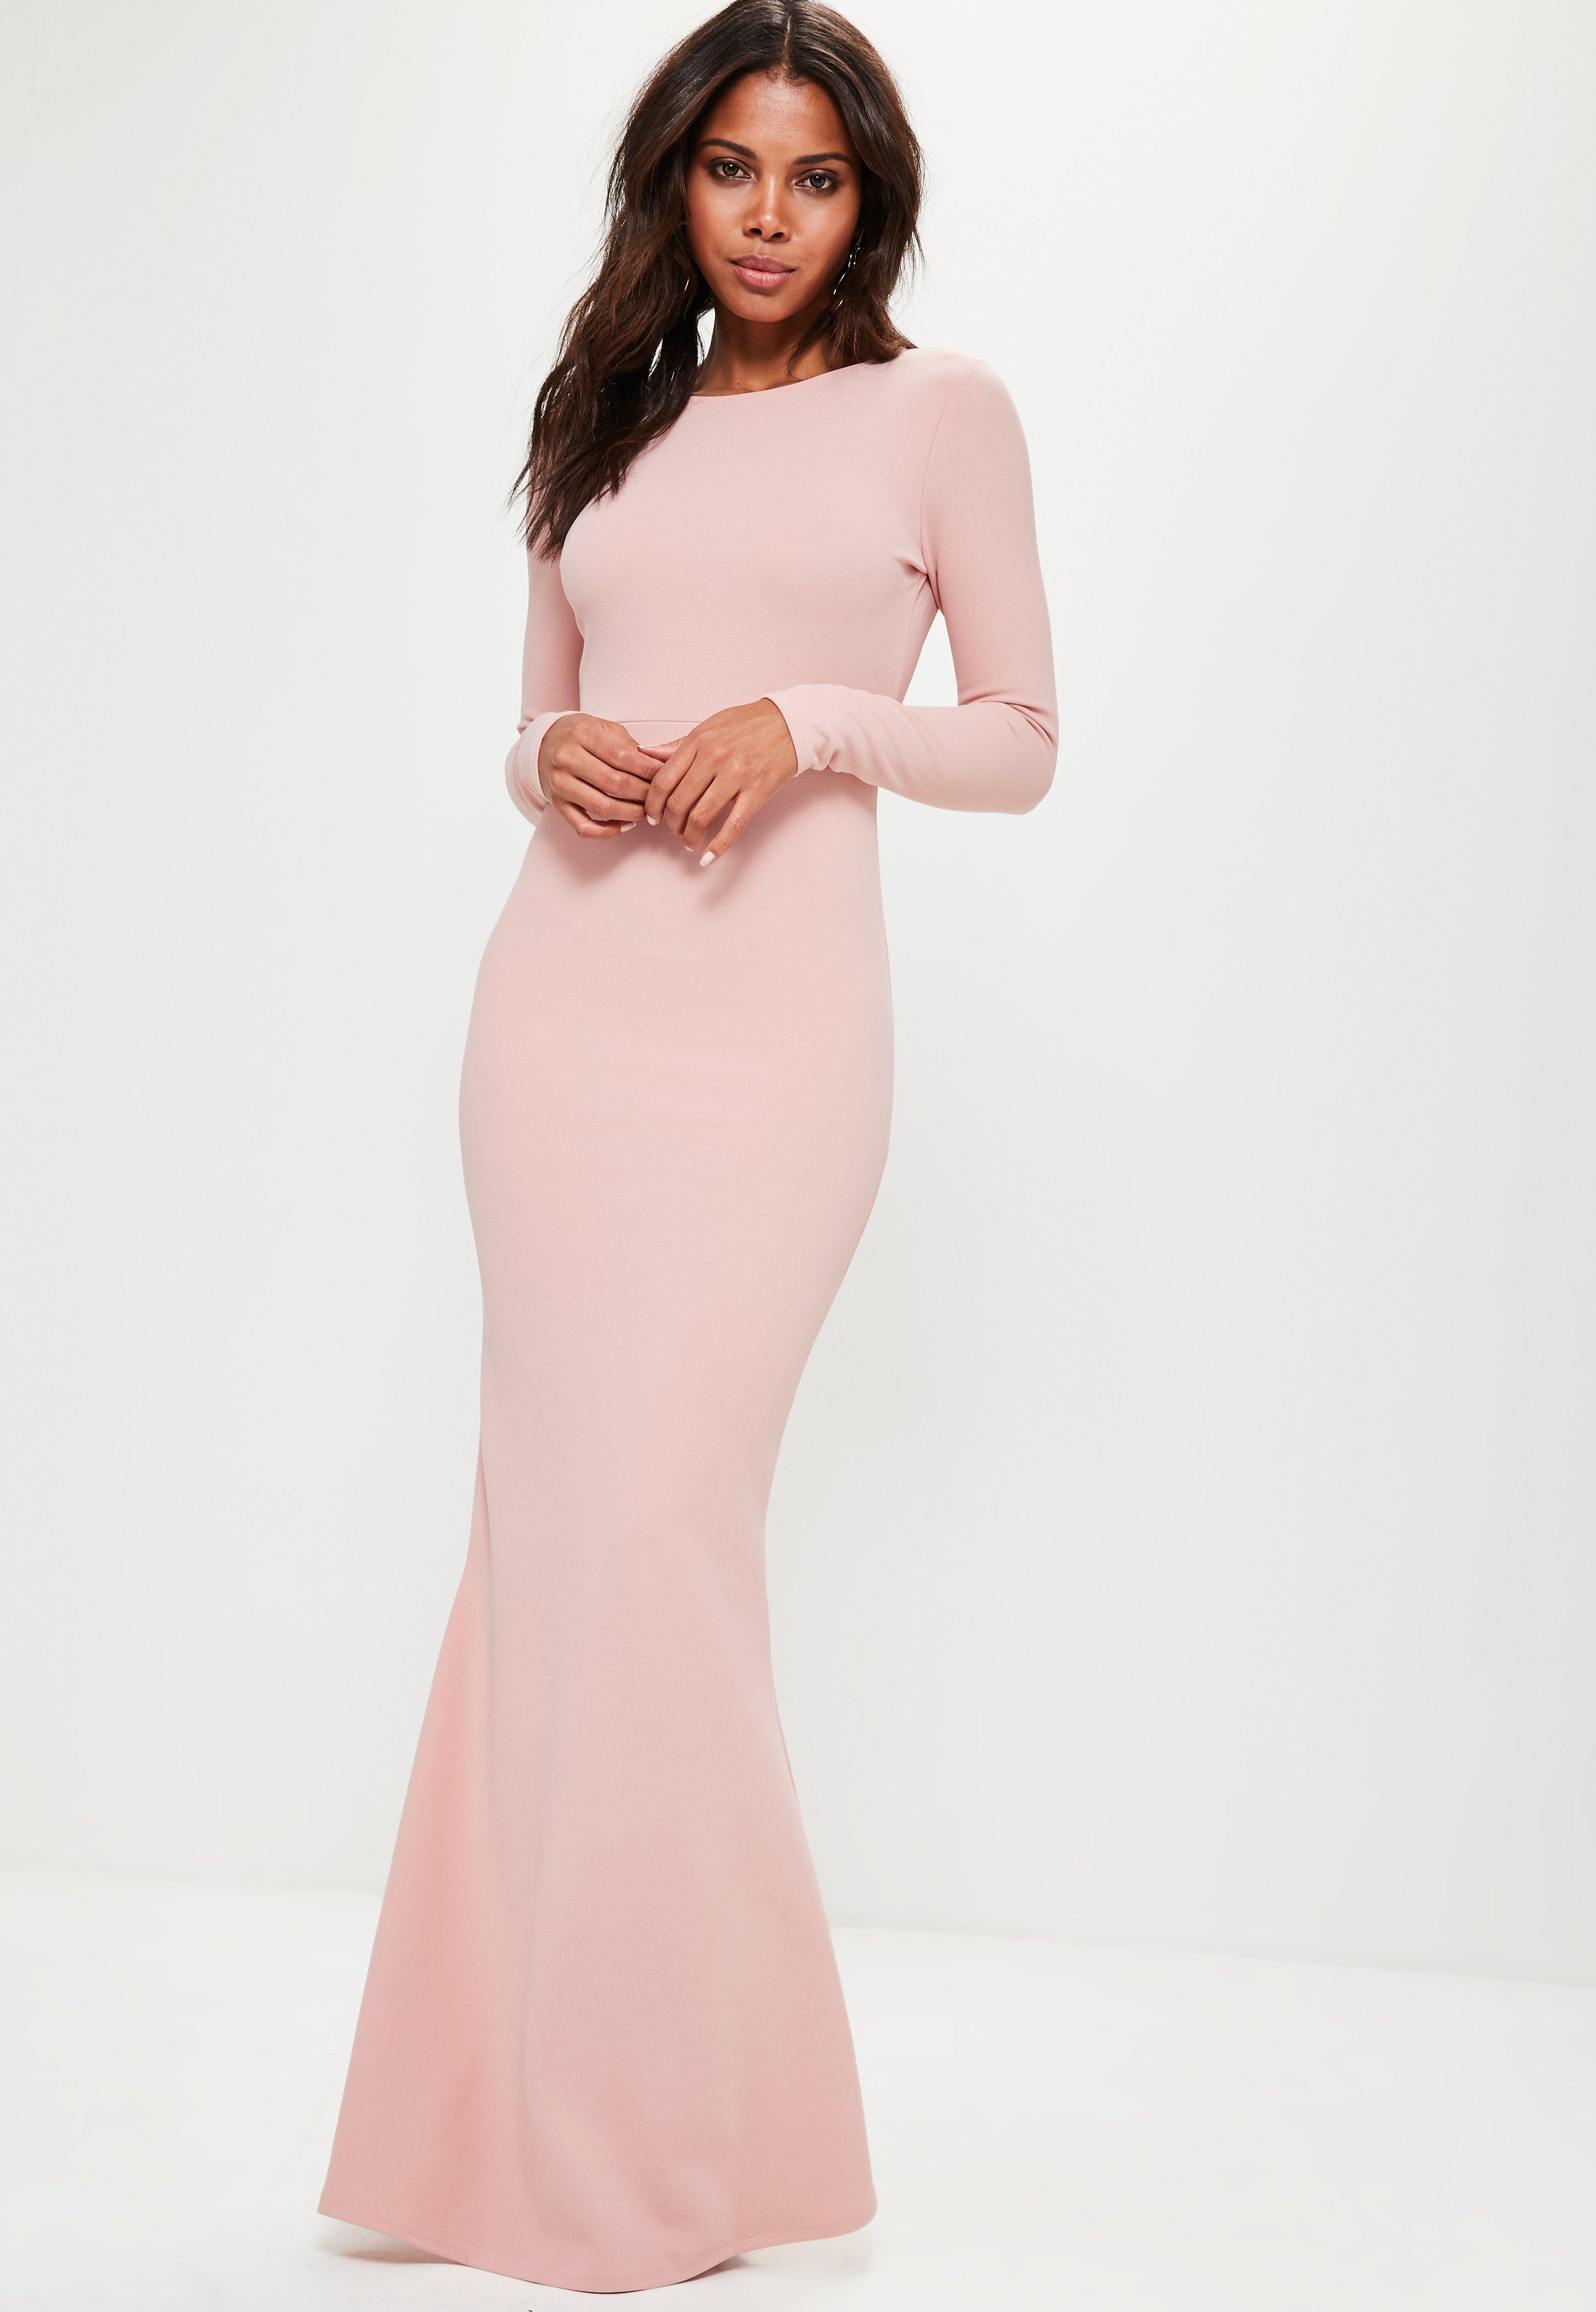 Lyst - Missguided Pink Long Sleeve Open Back Maxi Dress in Pink